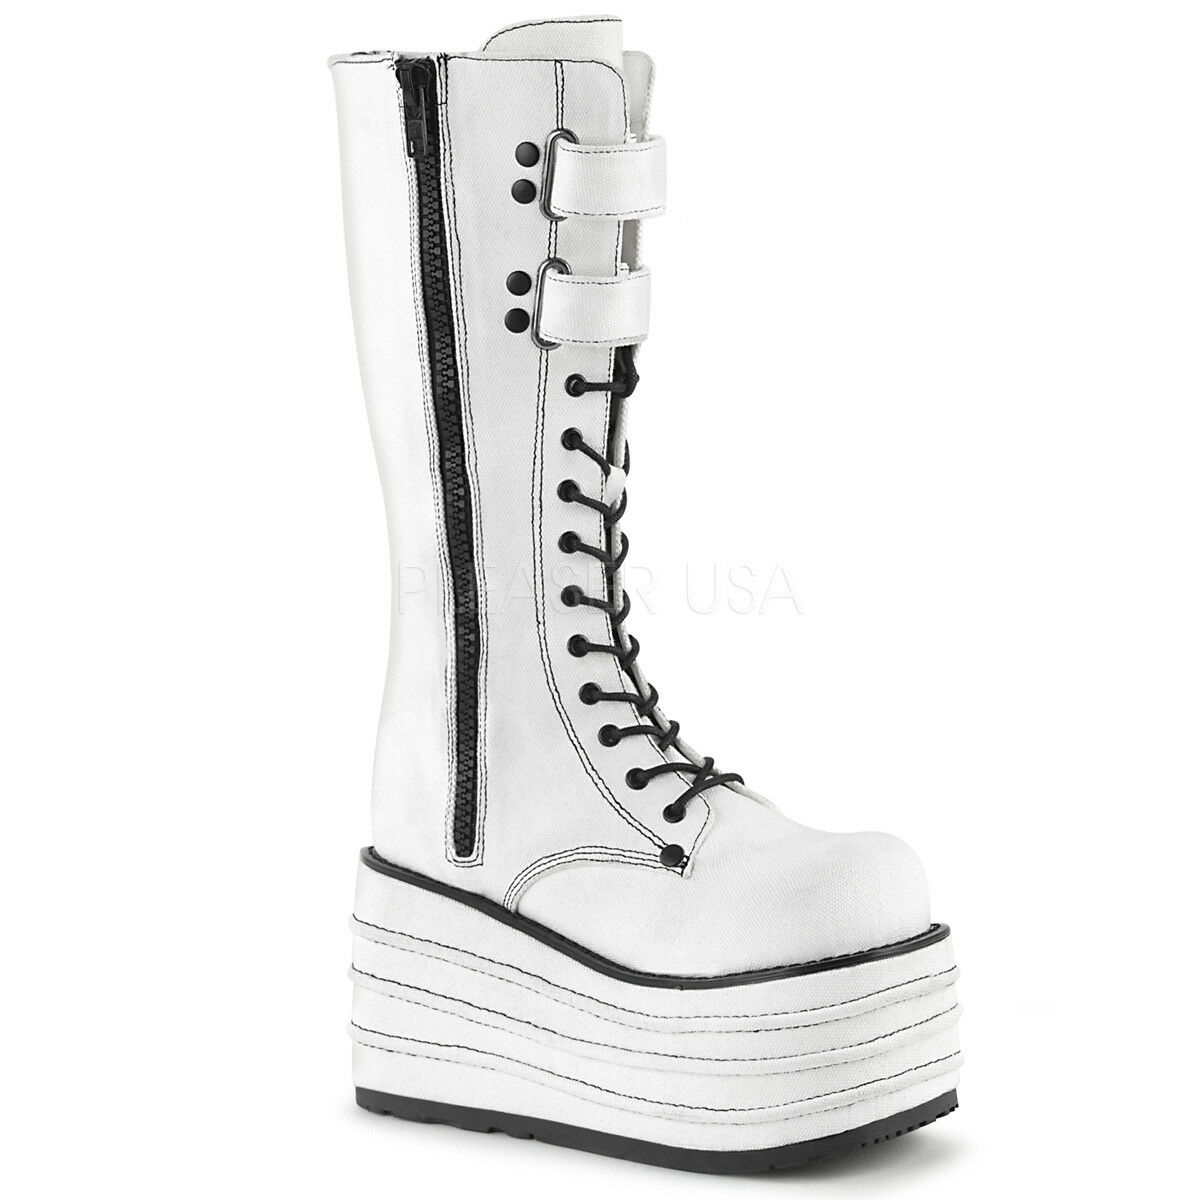 Demonia MORI-310 Women's White Canvas Platform Lace-Up Side Zip Knee High Boots